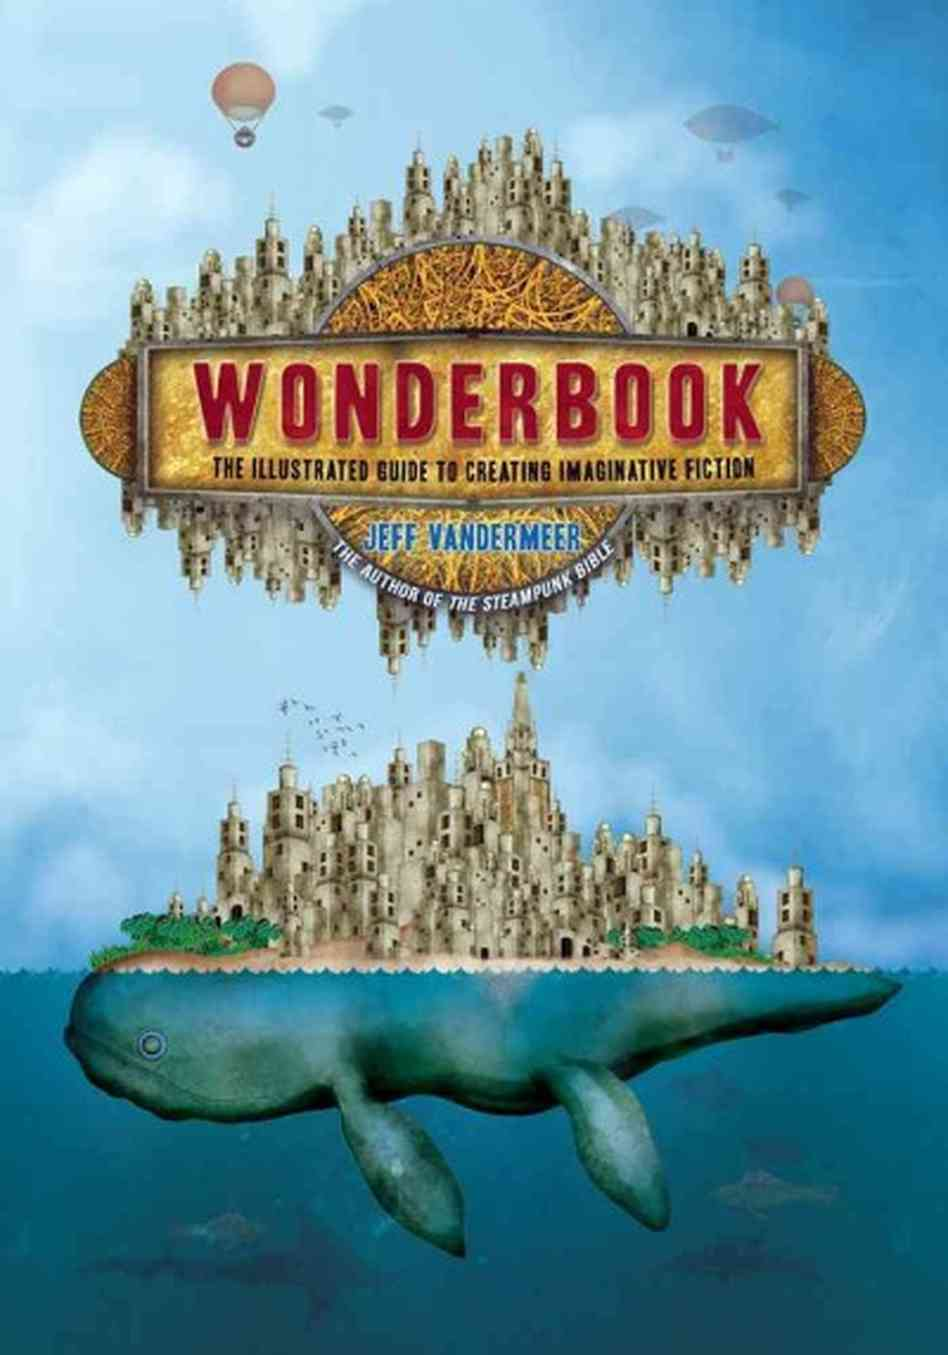 Wonderbook: The Illustrated Guide to Creating Imaginative Fiction Paperback – October 15, 2013 by Jeff VanderMeer (Author), Jeremy Zerfoss (Illustrator)